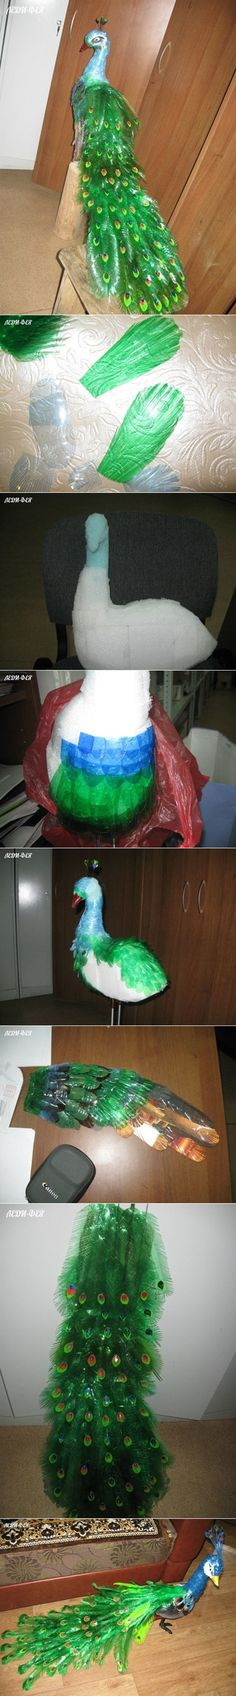 recycled plastic bottles crafts